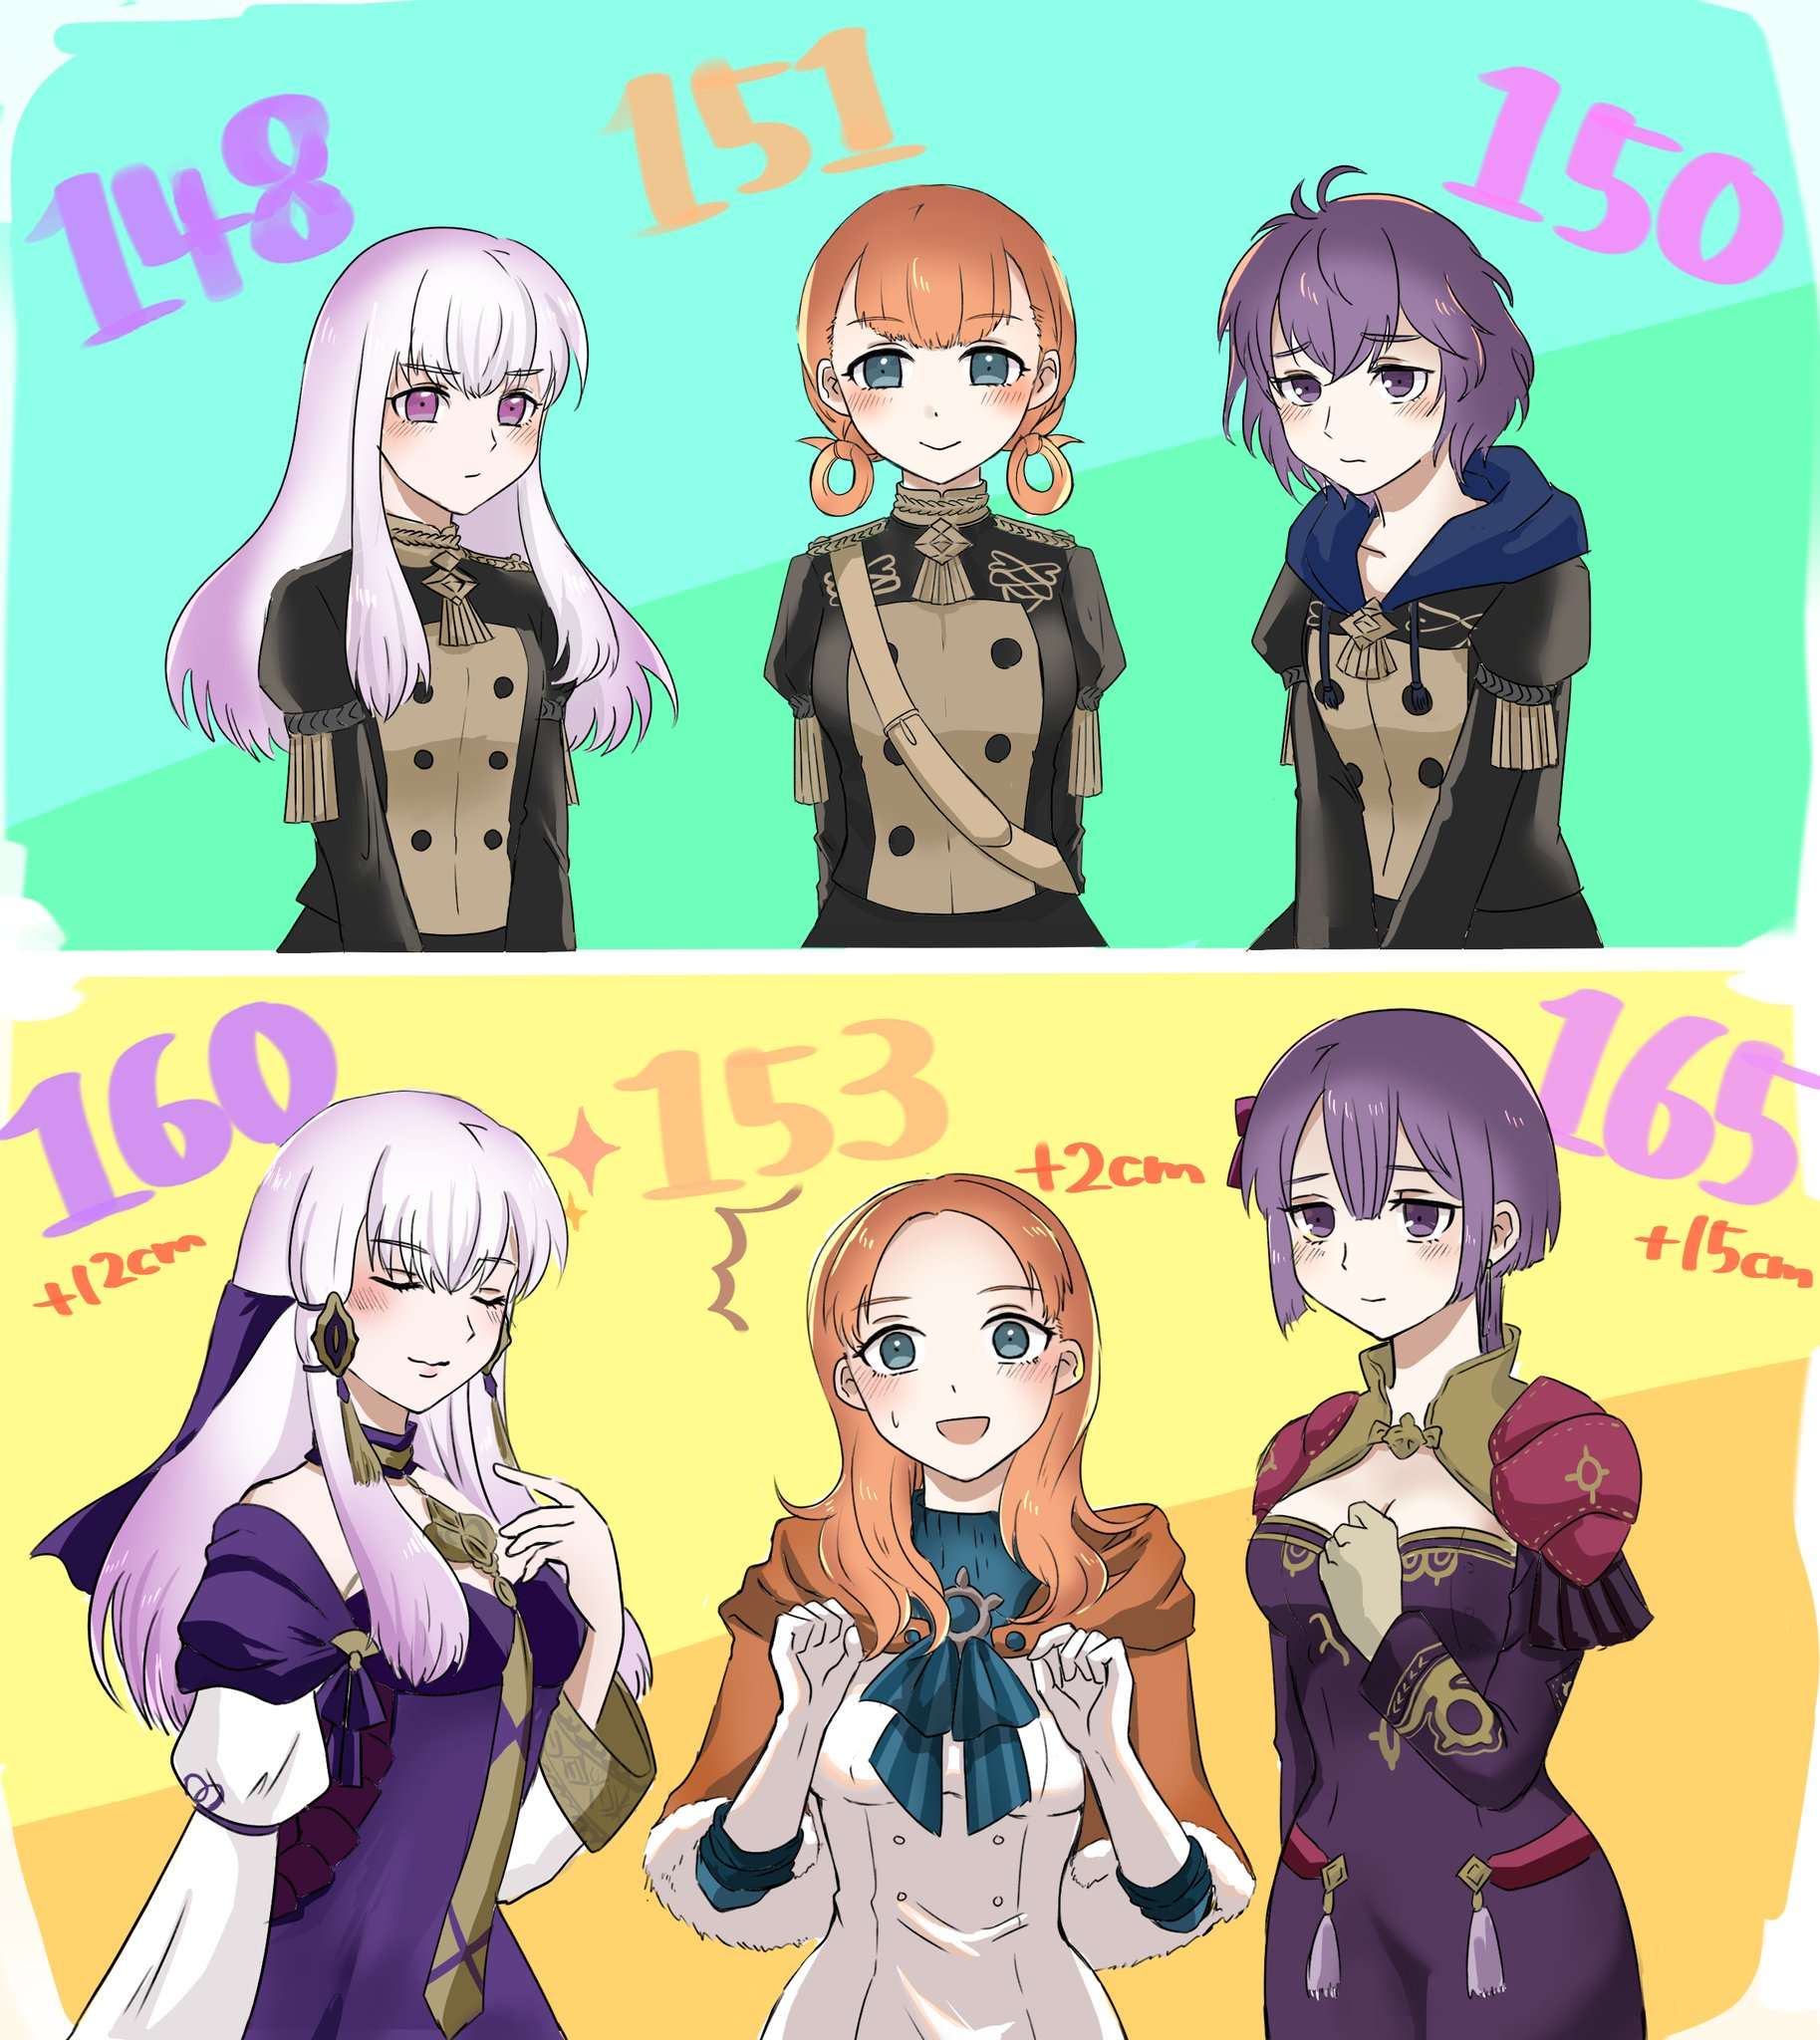 Anime Girl Growth growth spurts   fire emblem: three houses   know your meme